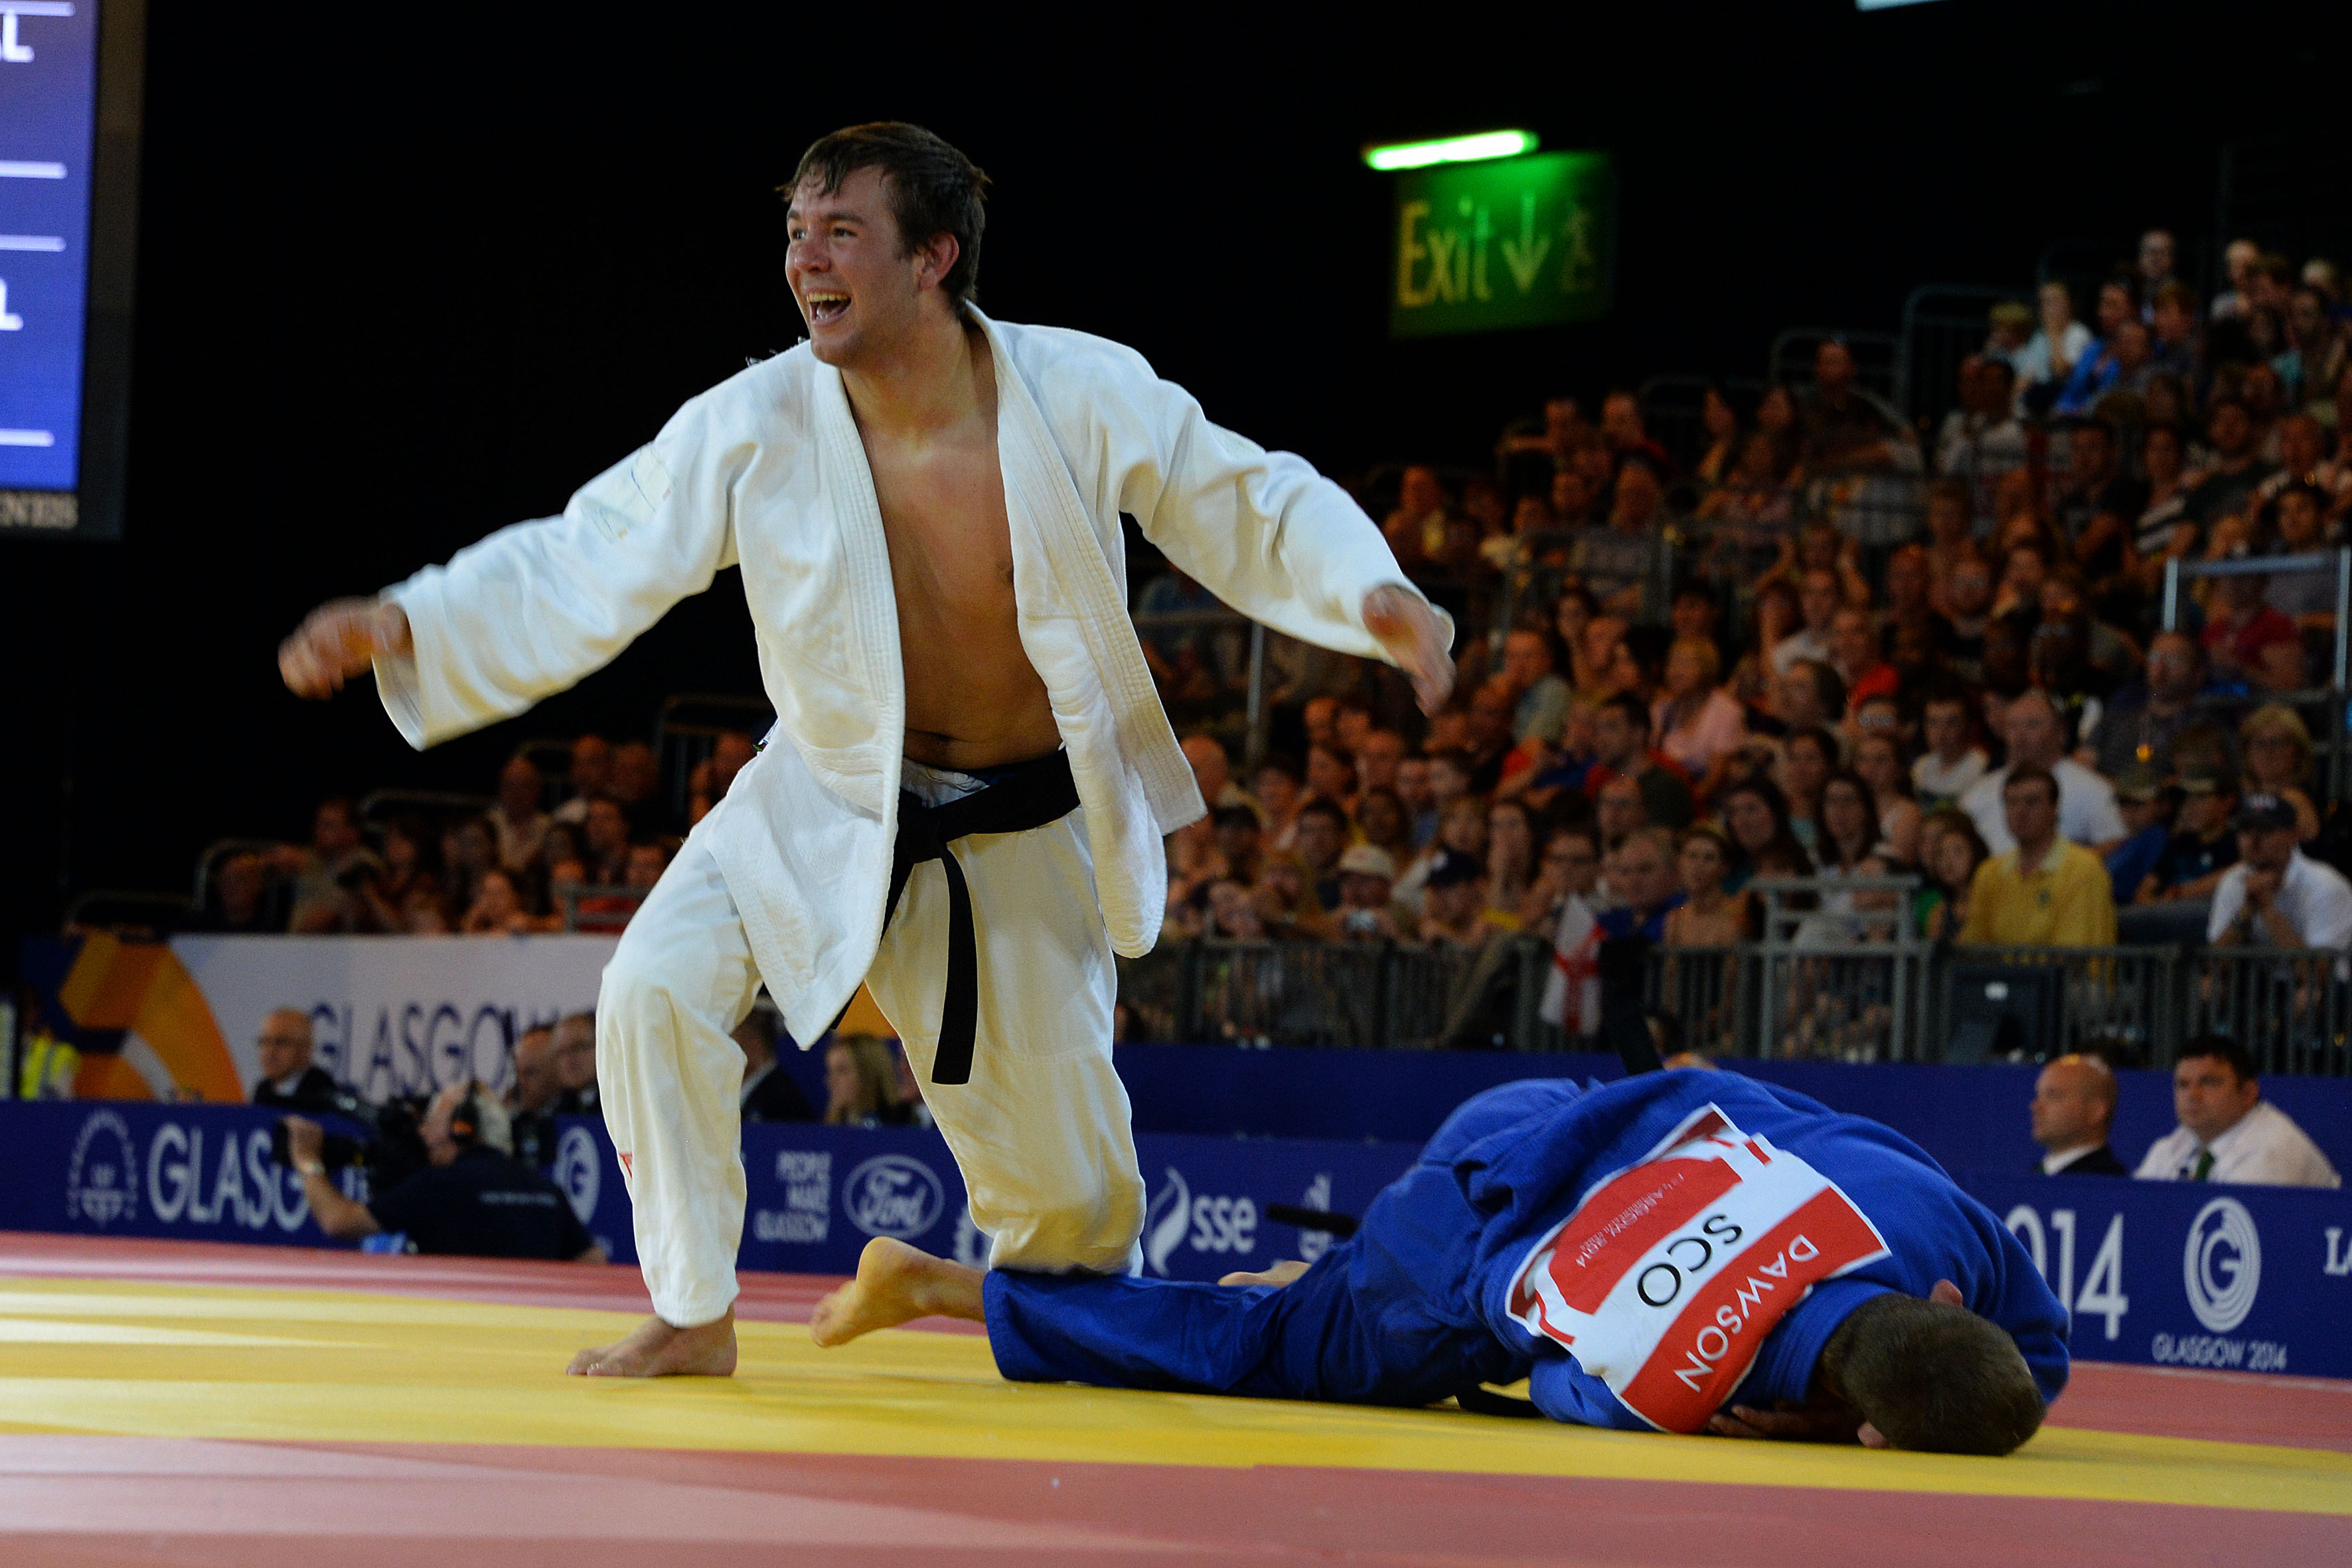 Van Zyl to grapple for judo bronze at Games